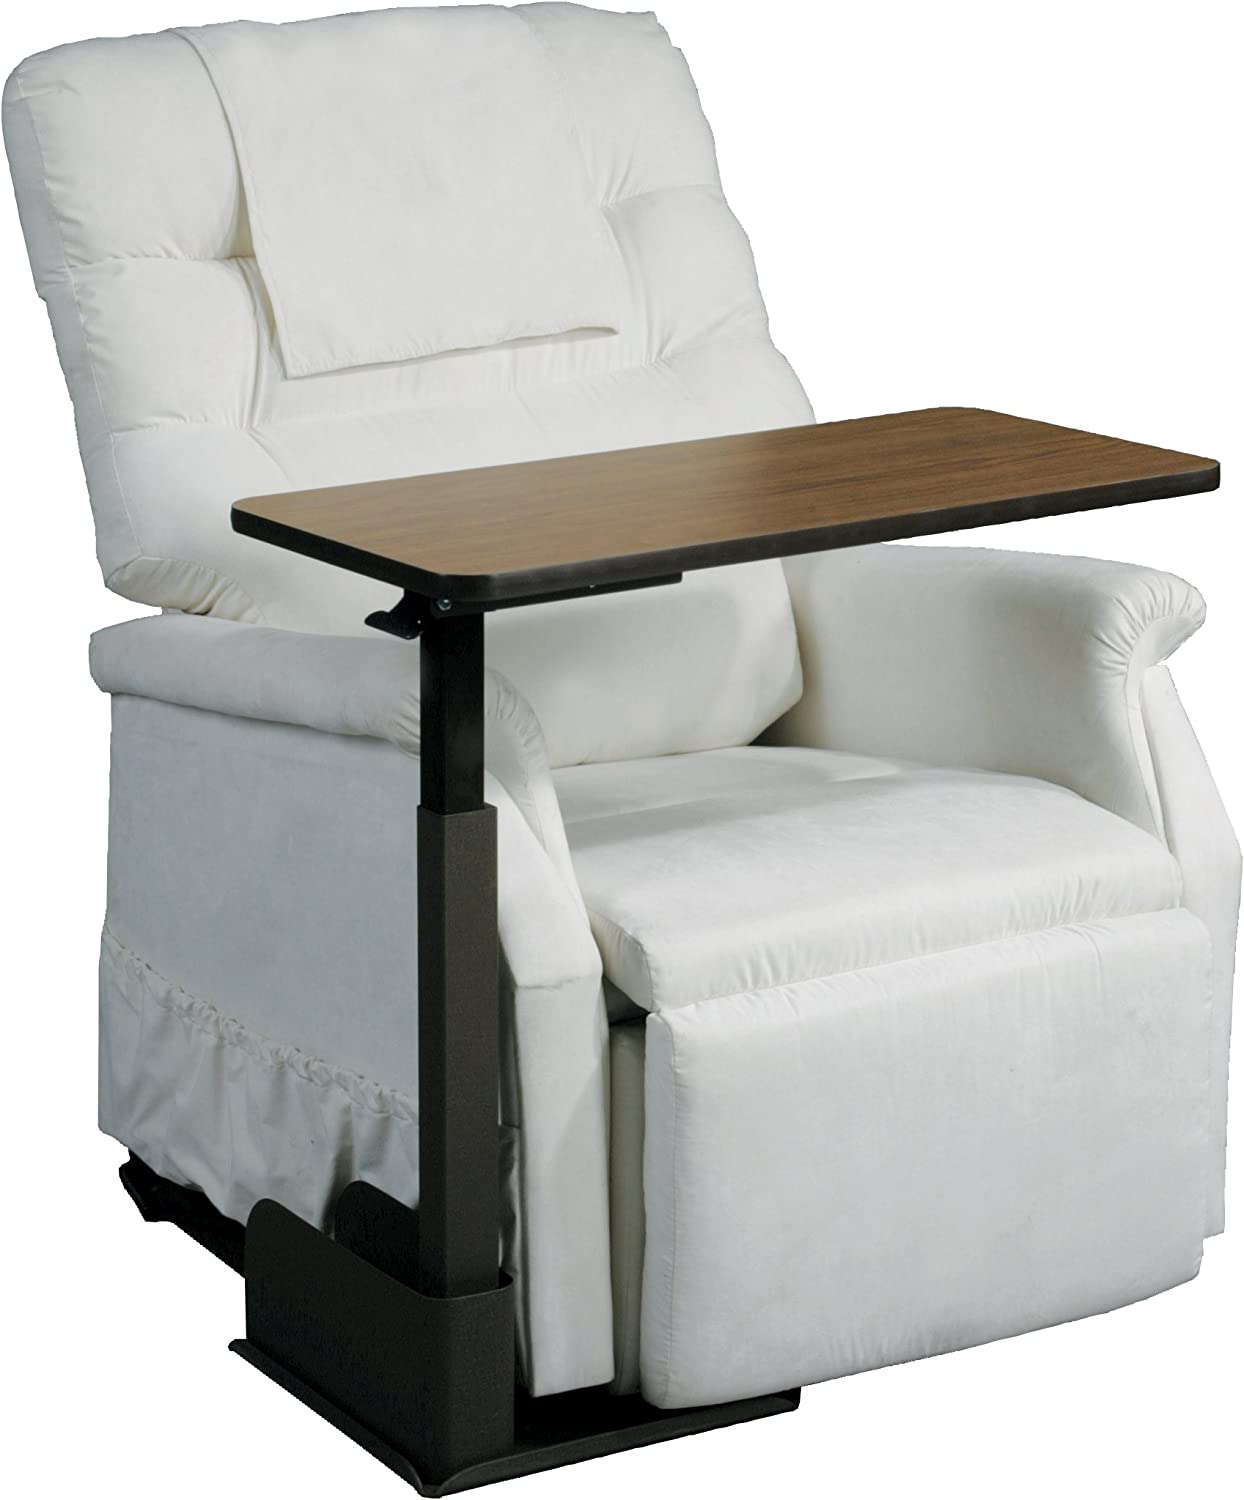 DRIVE Seat Lift Chair Table - Right QTY: 1: Health & Personal Care